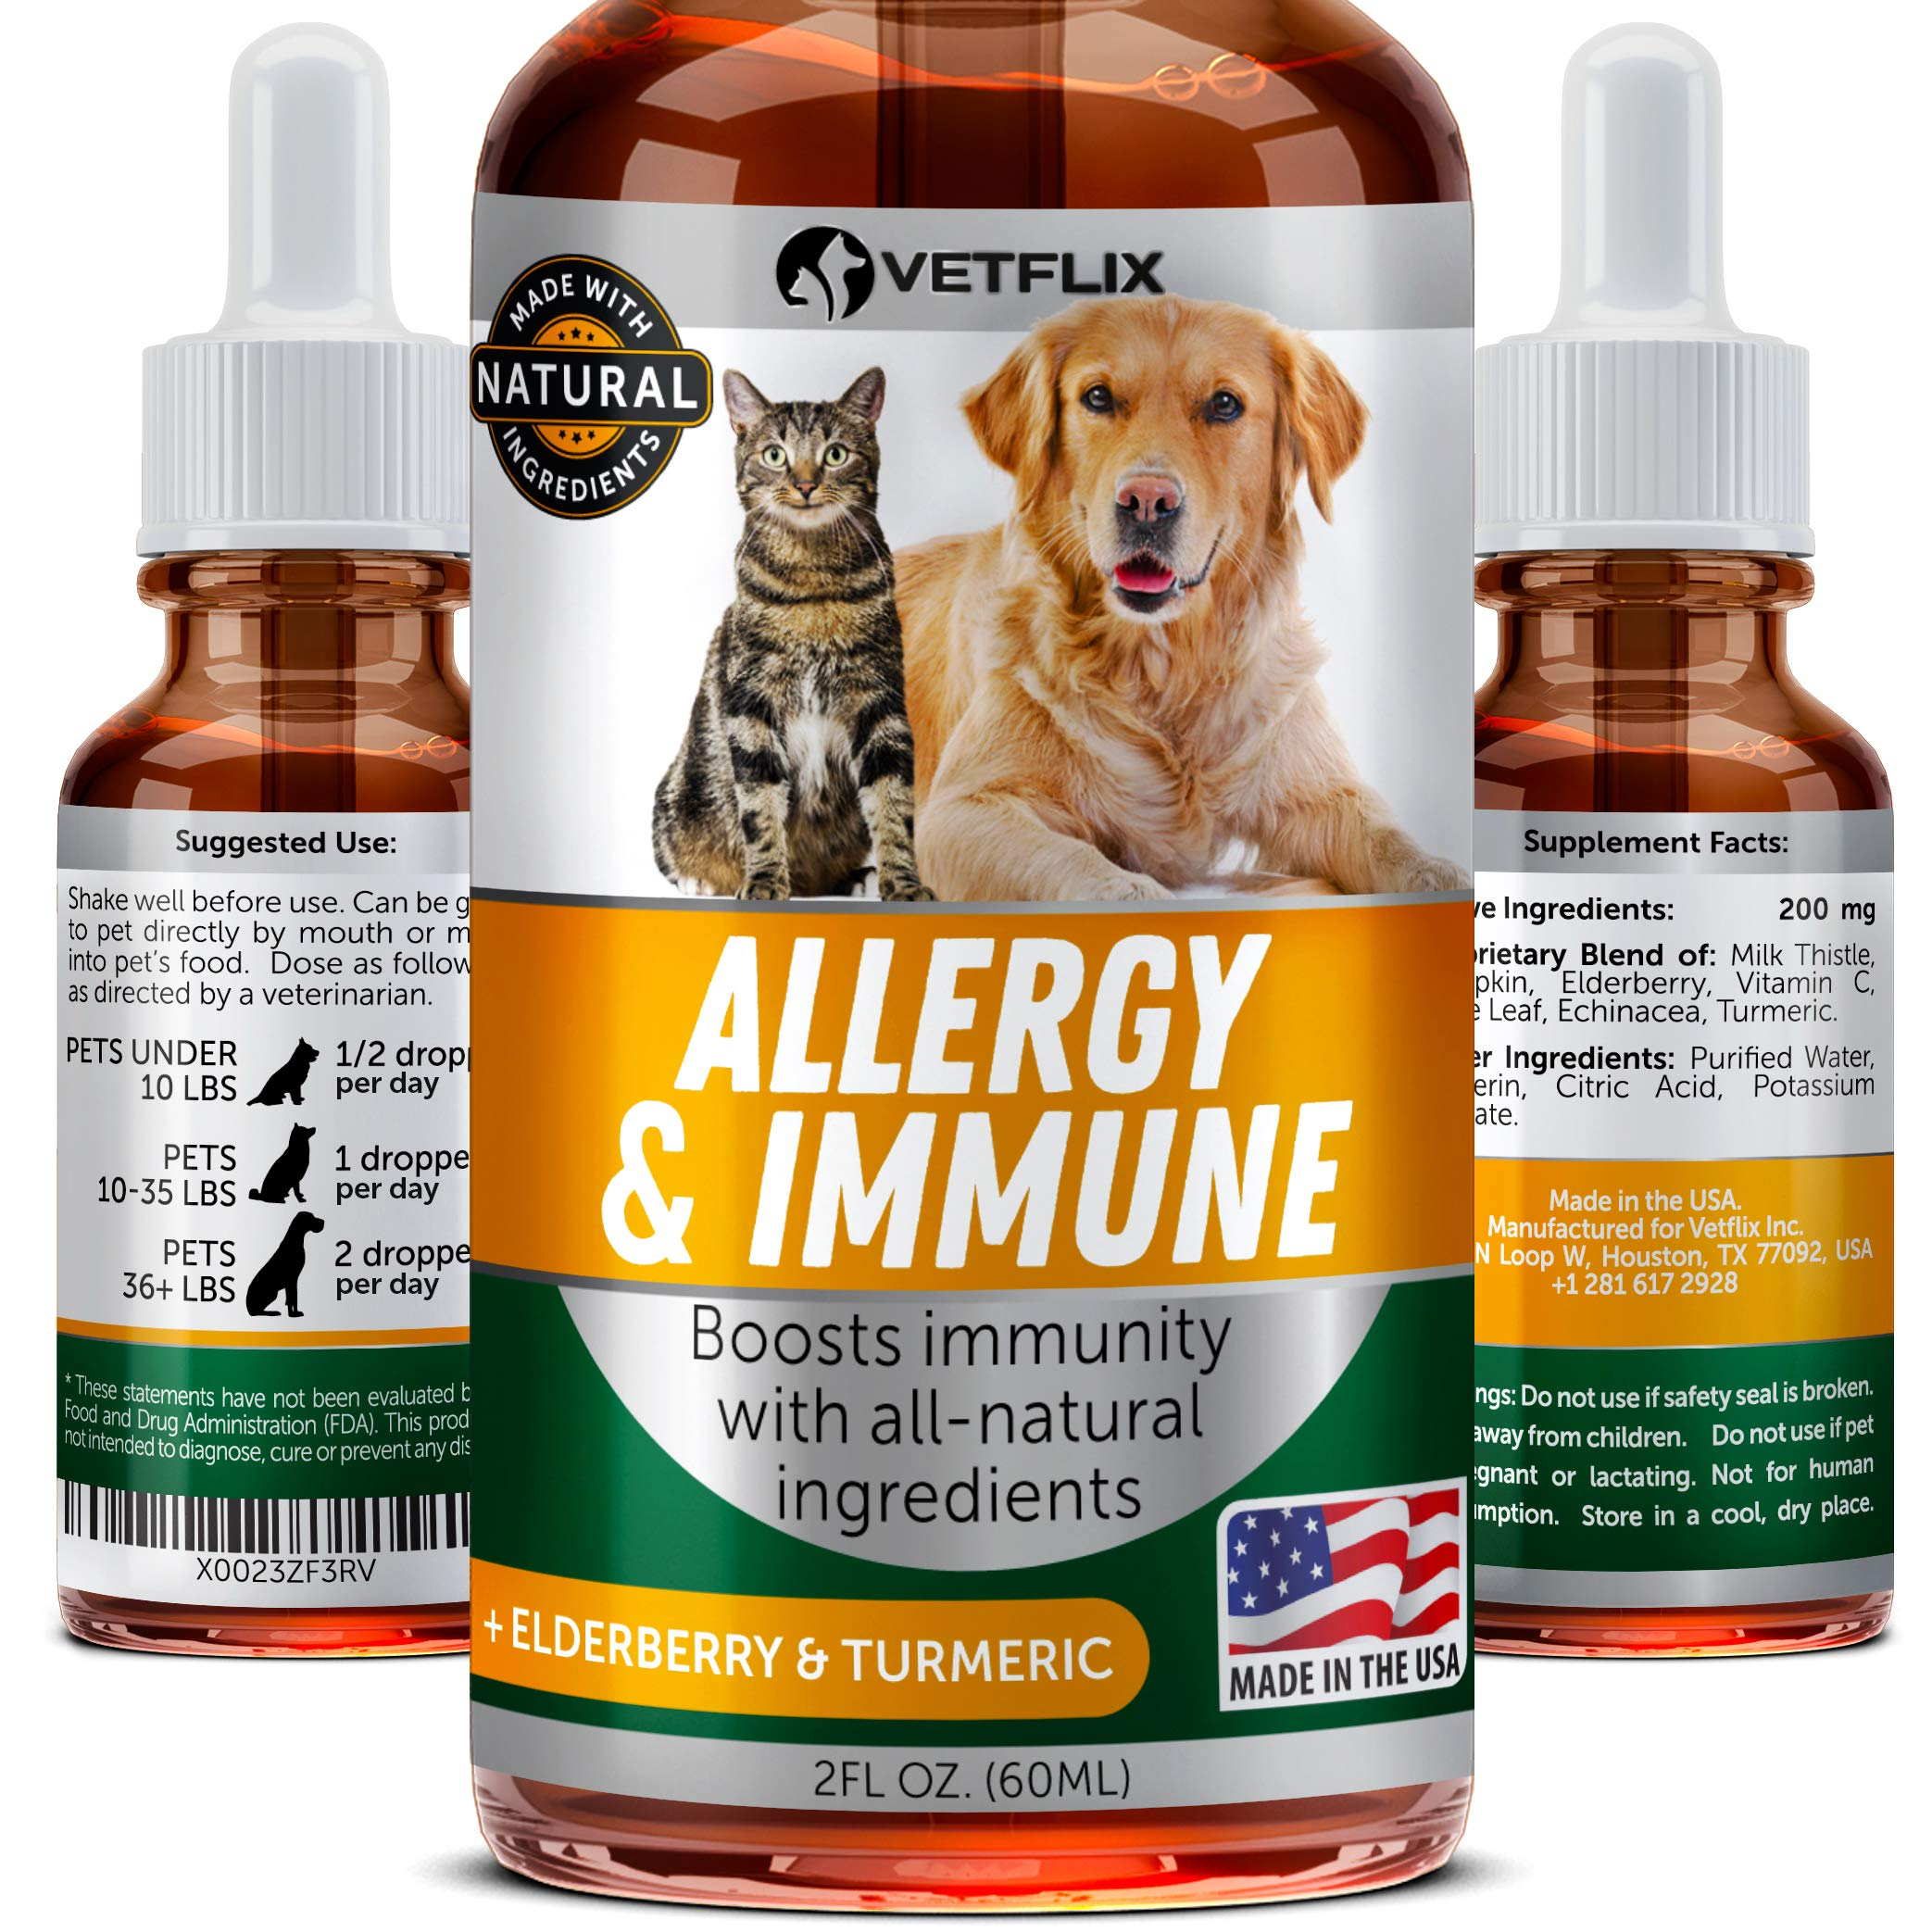 Pet Allergy & Immune Support - Made in USA - Cat & Dog Allergy Relief - 100% Natural - Milk Thistle & Turmeric - Best Treatment for Dog & Cat Immune System - Vitamin C for Pets - Non-GMO by Vetflix